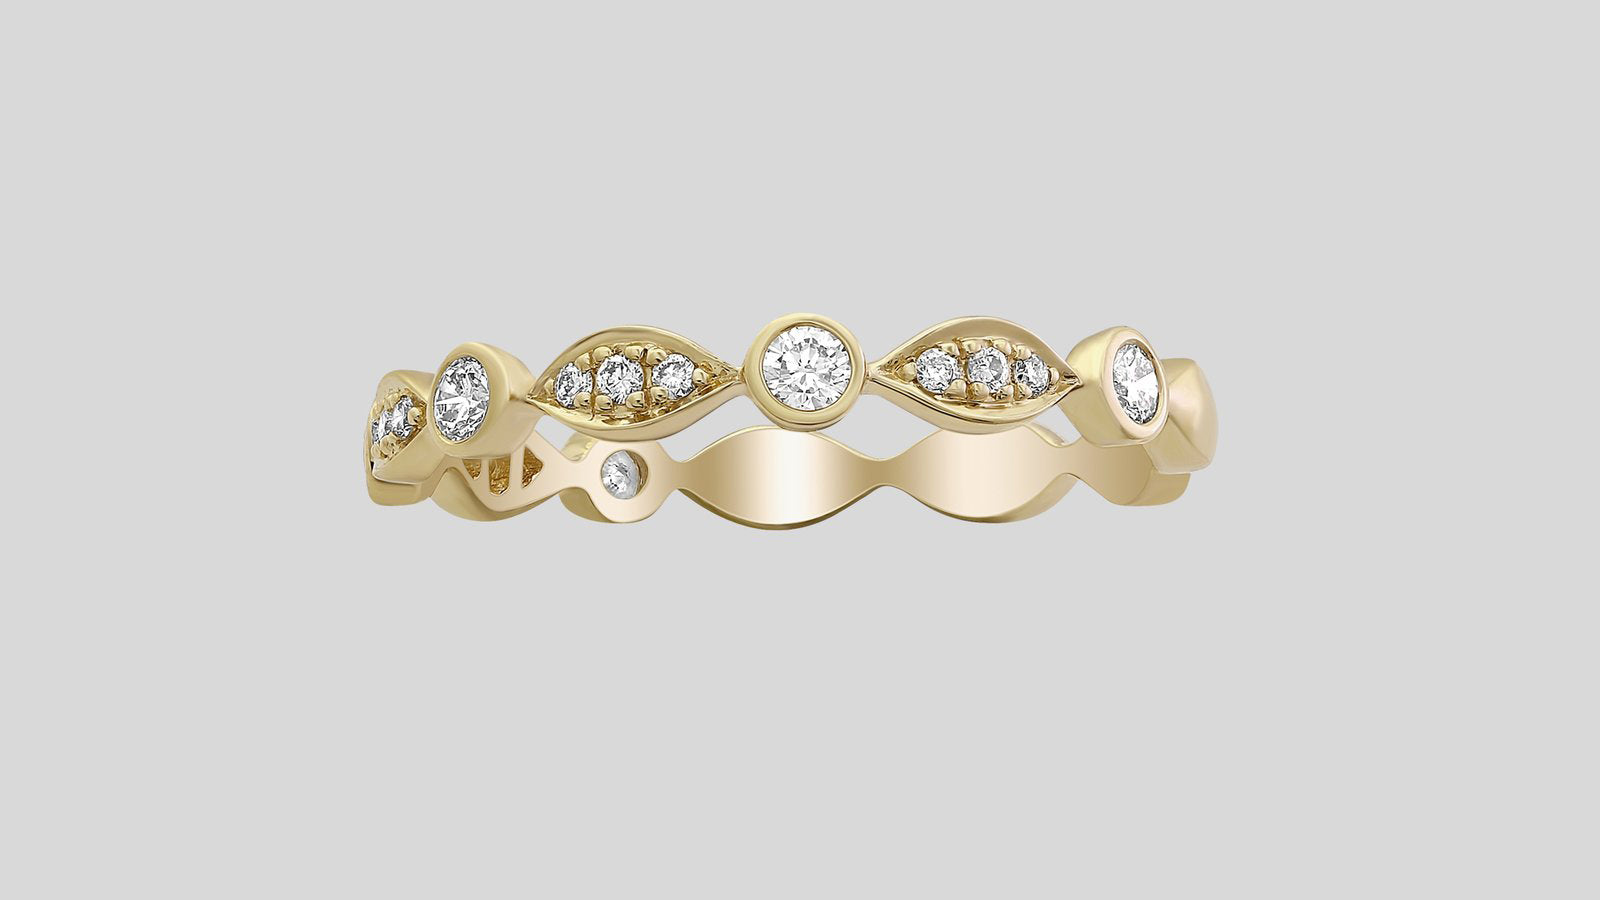 The Vintage Diamond Band